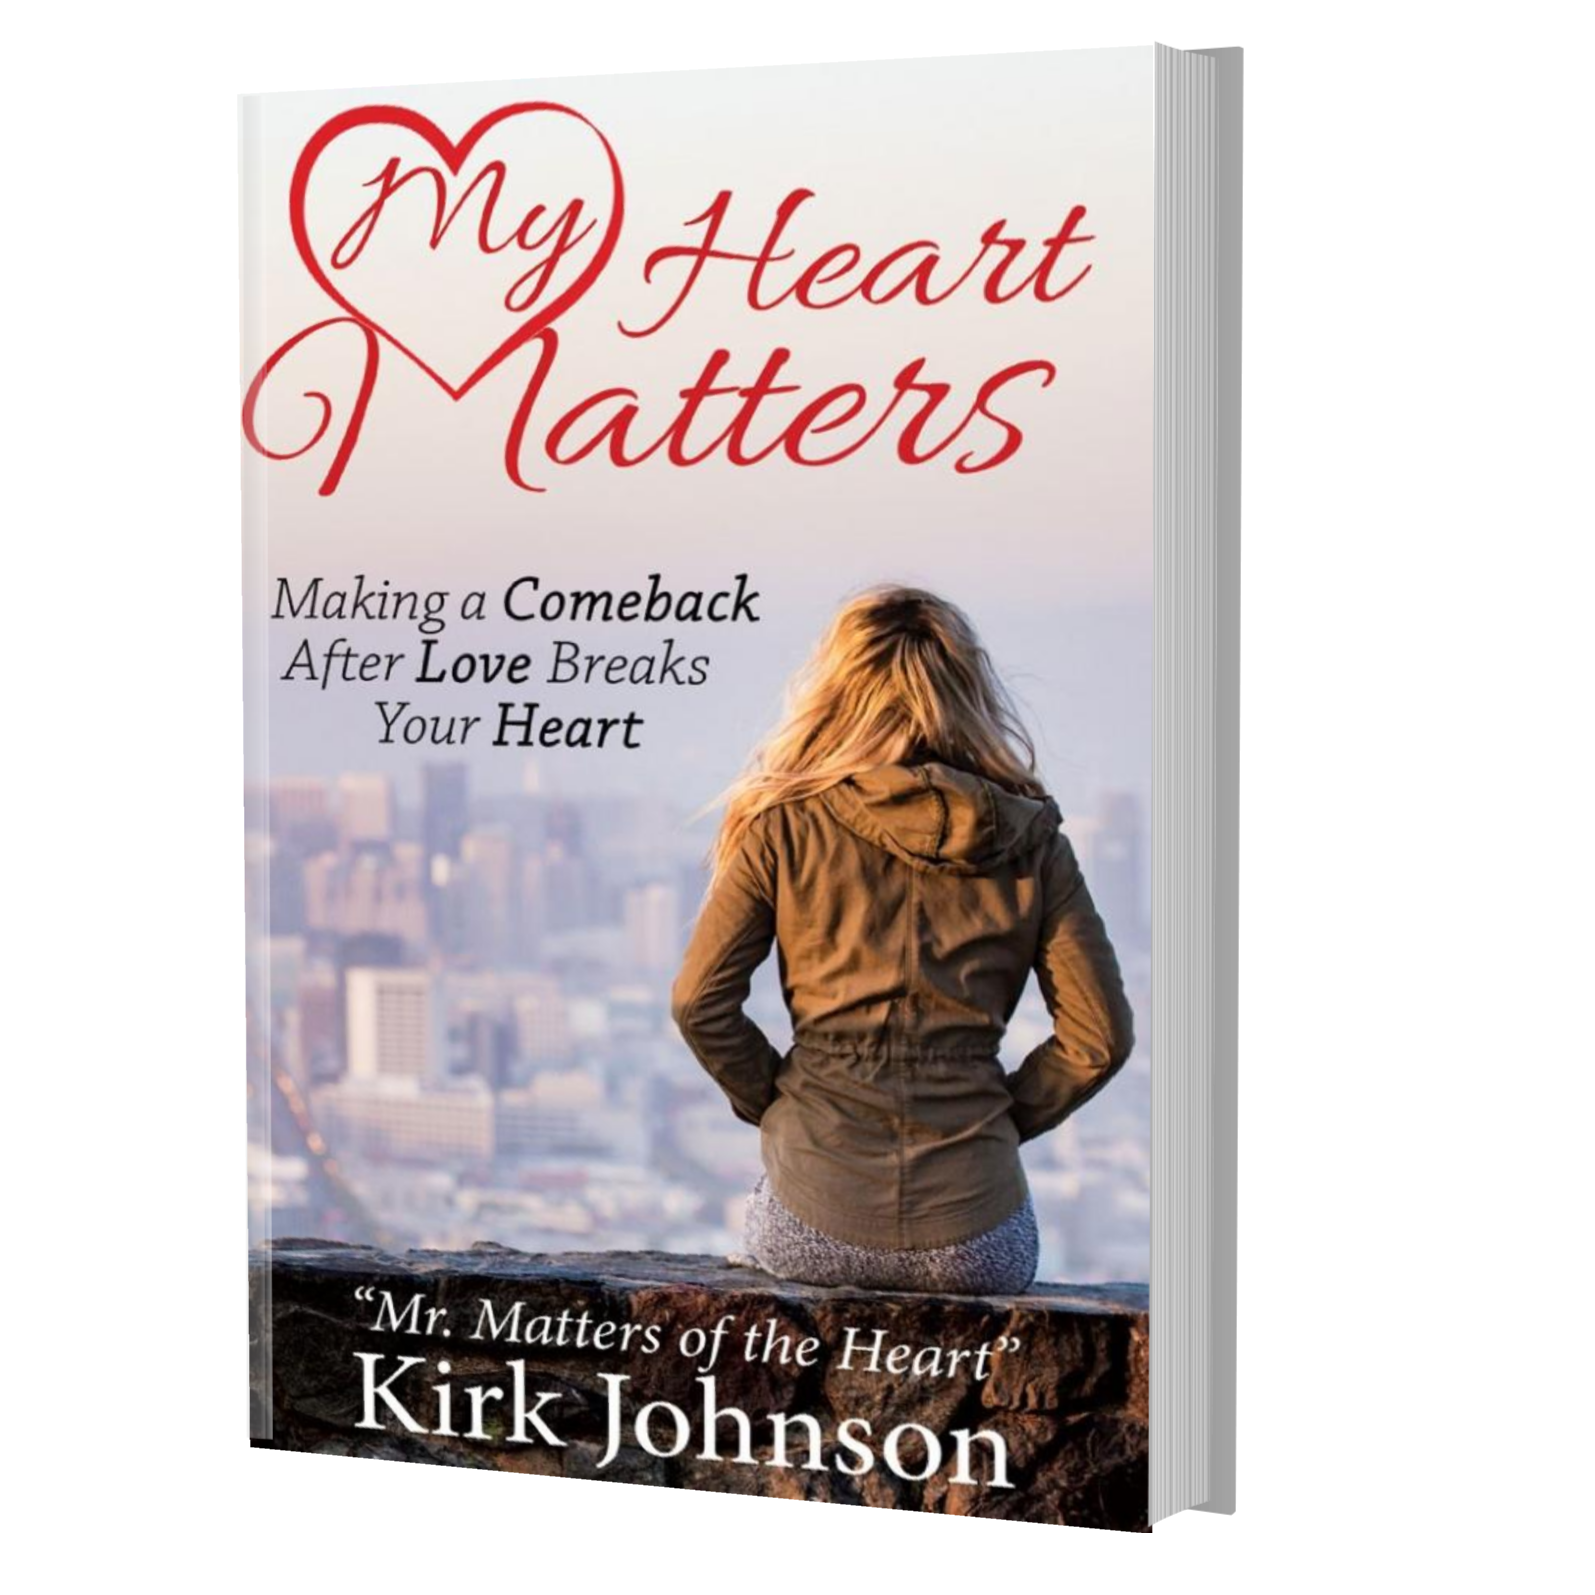 My Heart Matters: Making a Comeback After Love Breaks Your Heart - Author Kirk Johnson